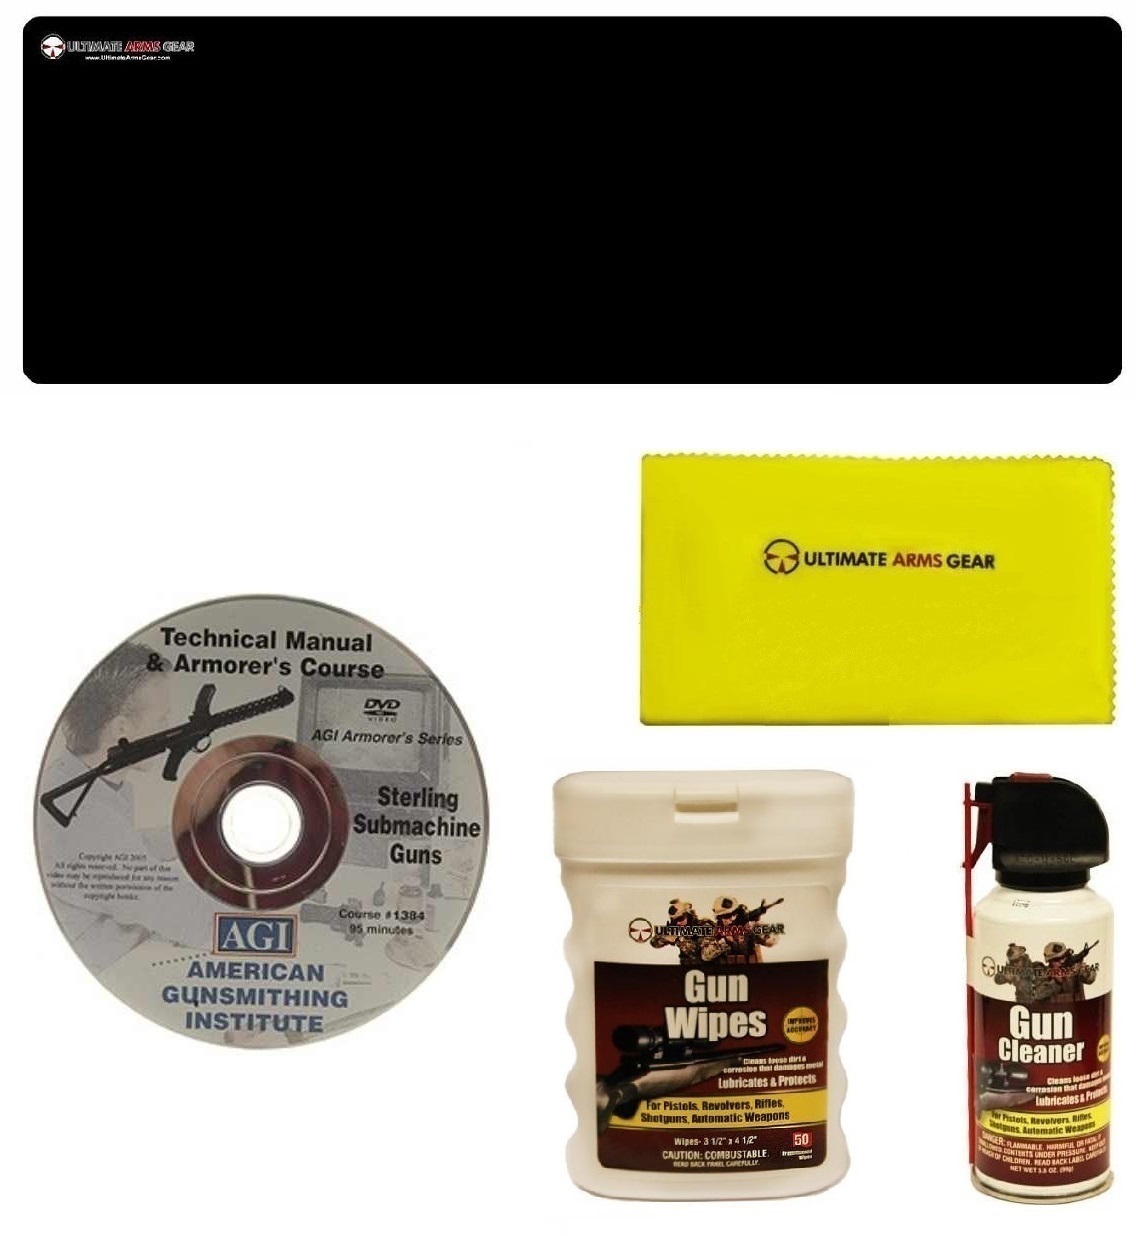 AGI DVD Manual & Armorer's Course Sterling SMG Submachine Gun + Ultimate Arms Gear Gunsmith & Armorer's Cleaning Bench... by